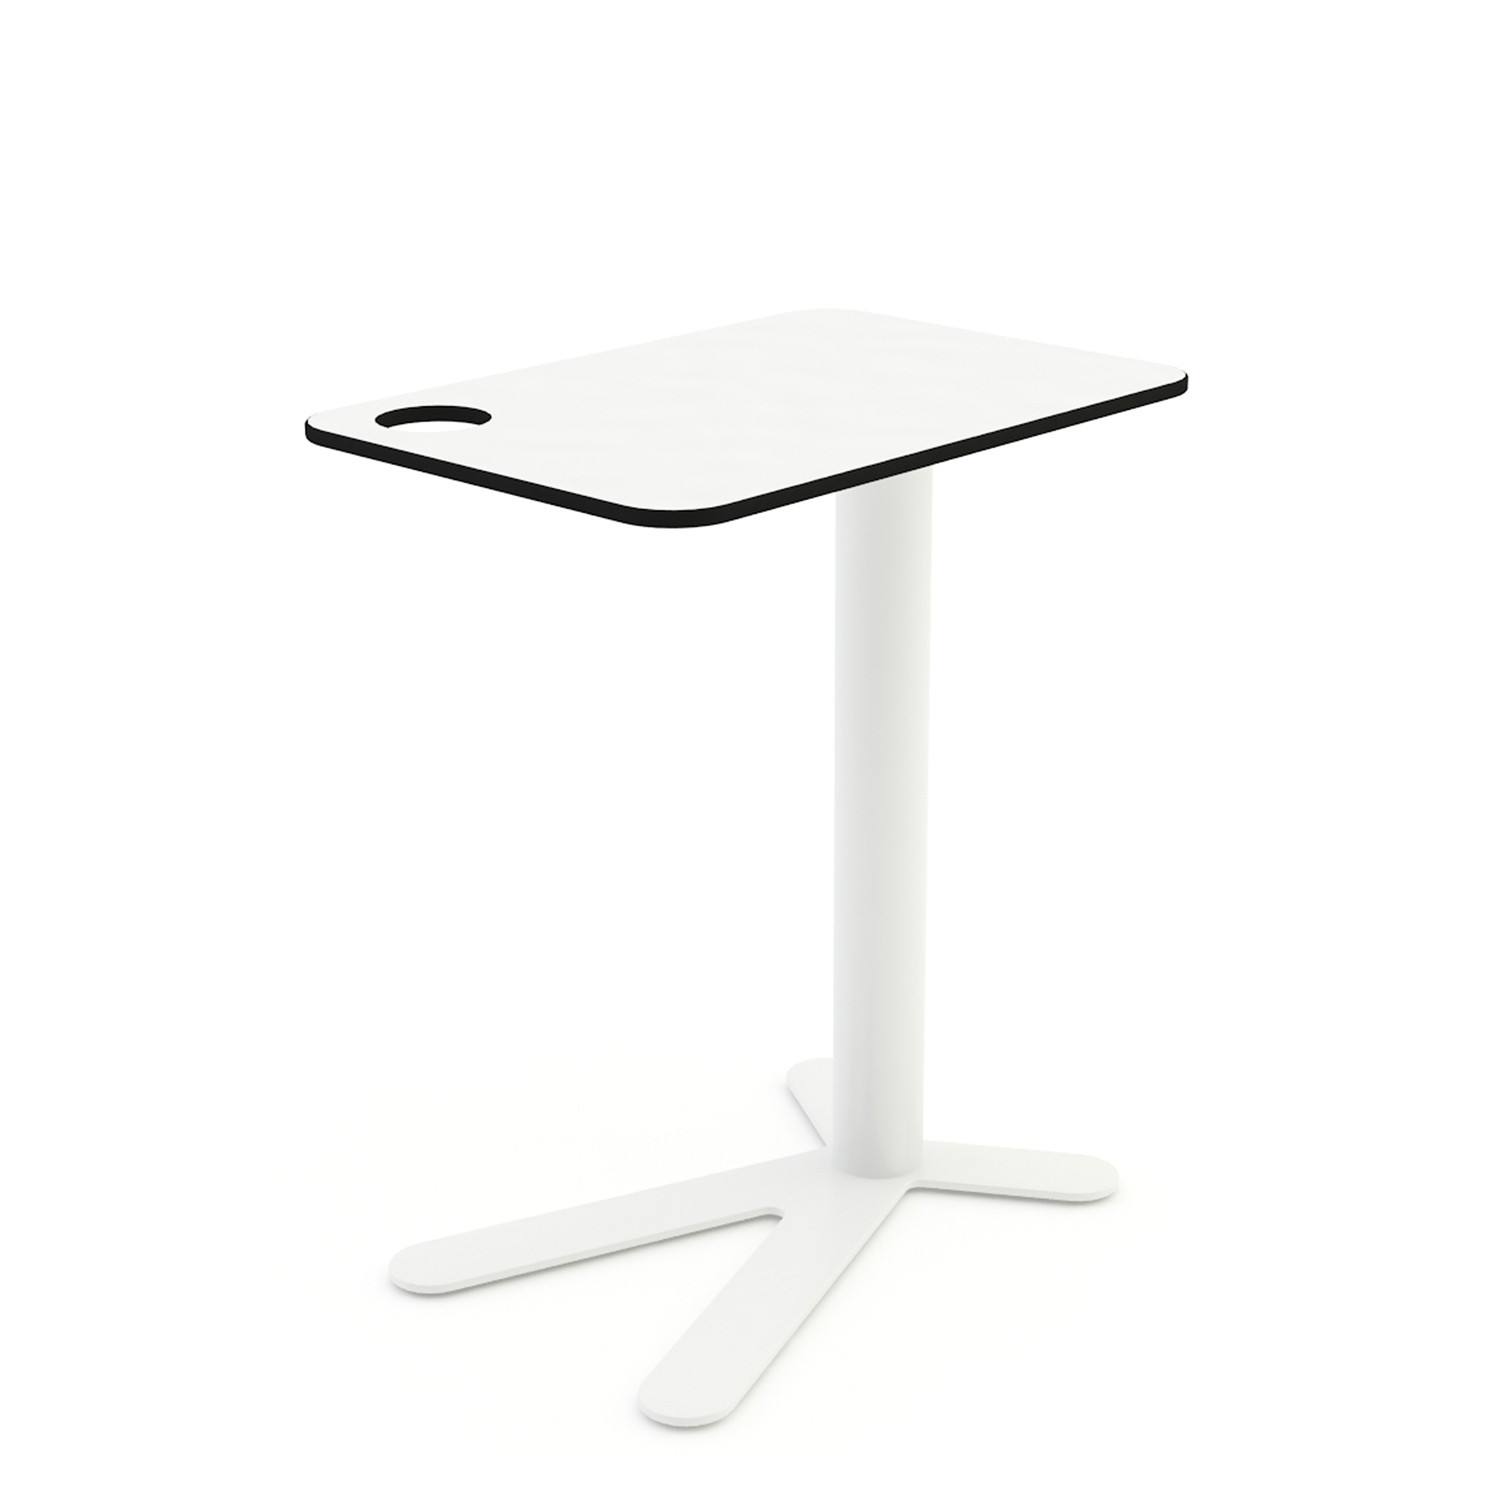 Loook Space Chicken Laptop Tables